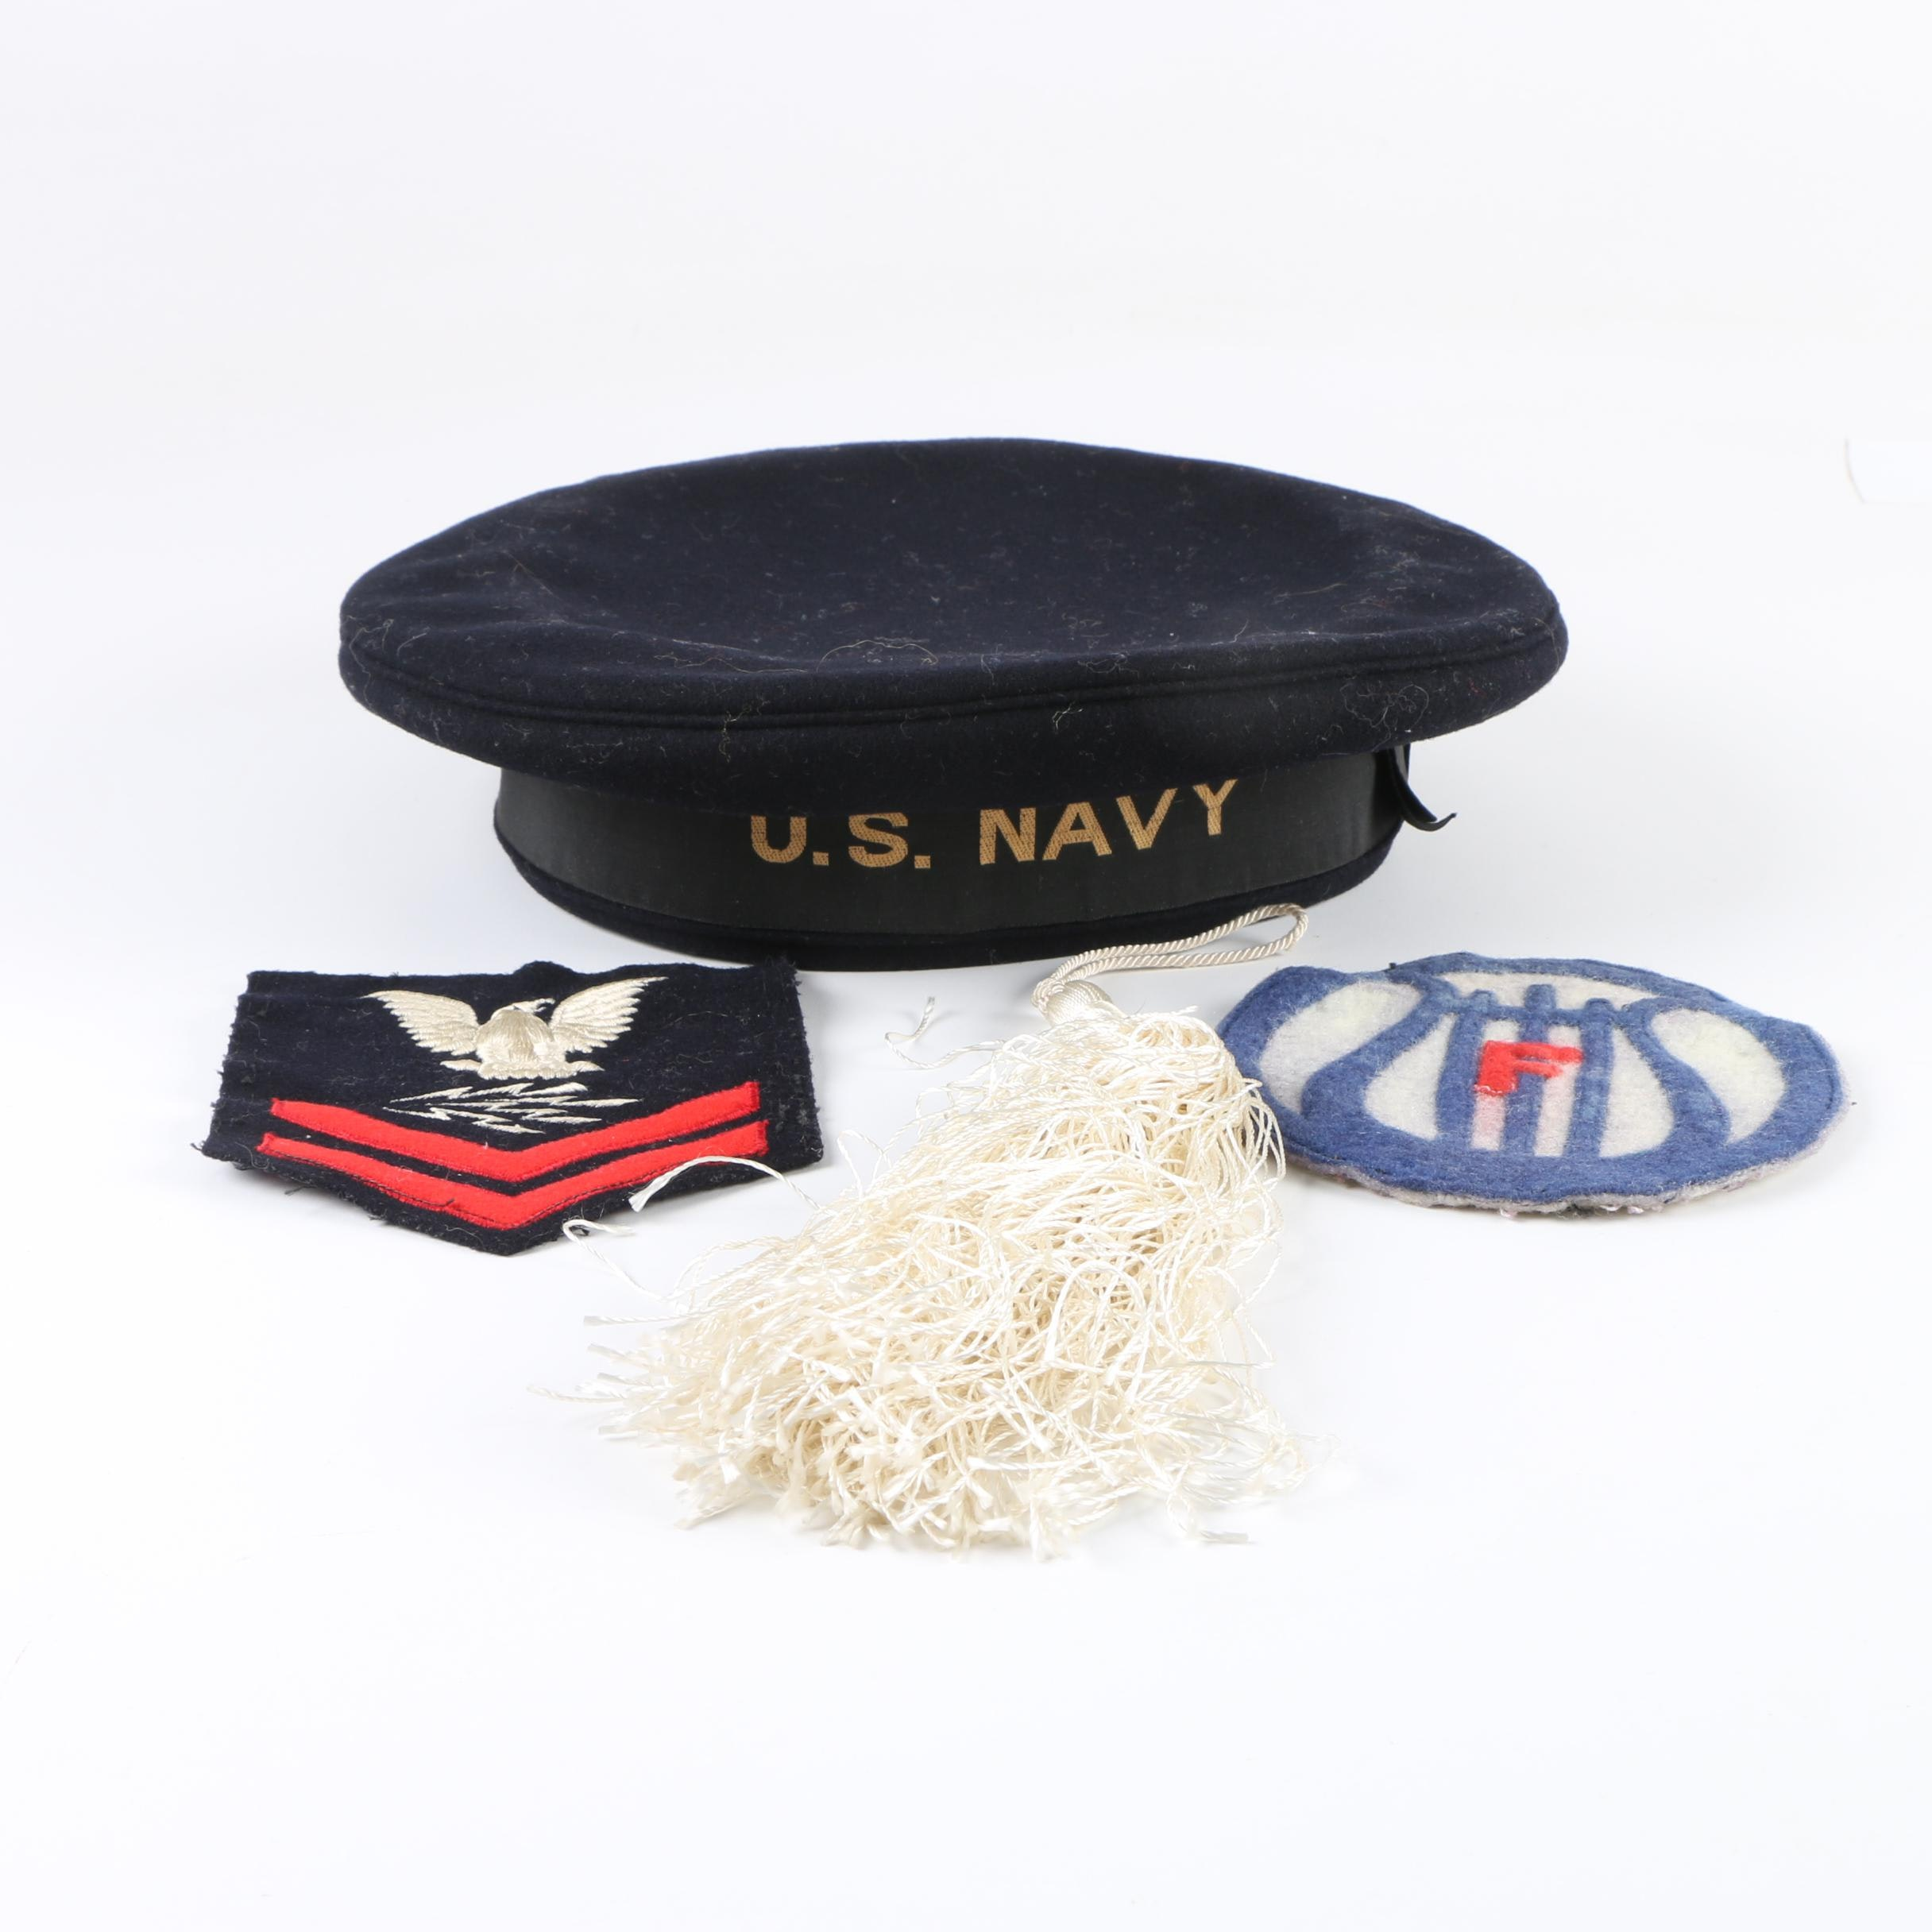 Vintage U.S. Navy Cap, Patches, and Tassel